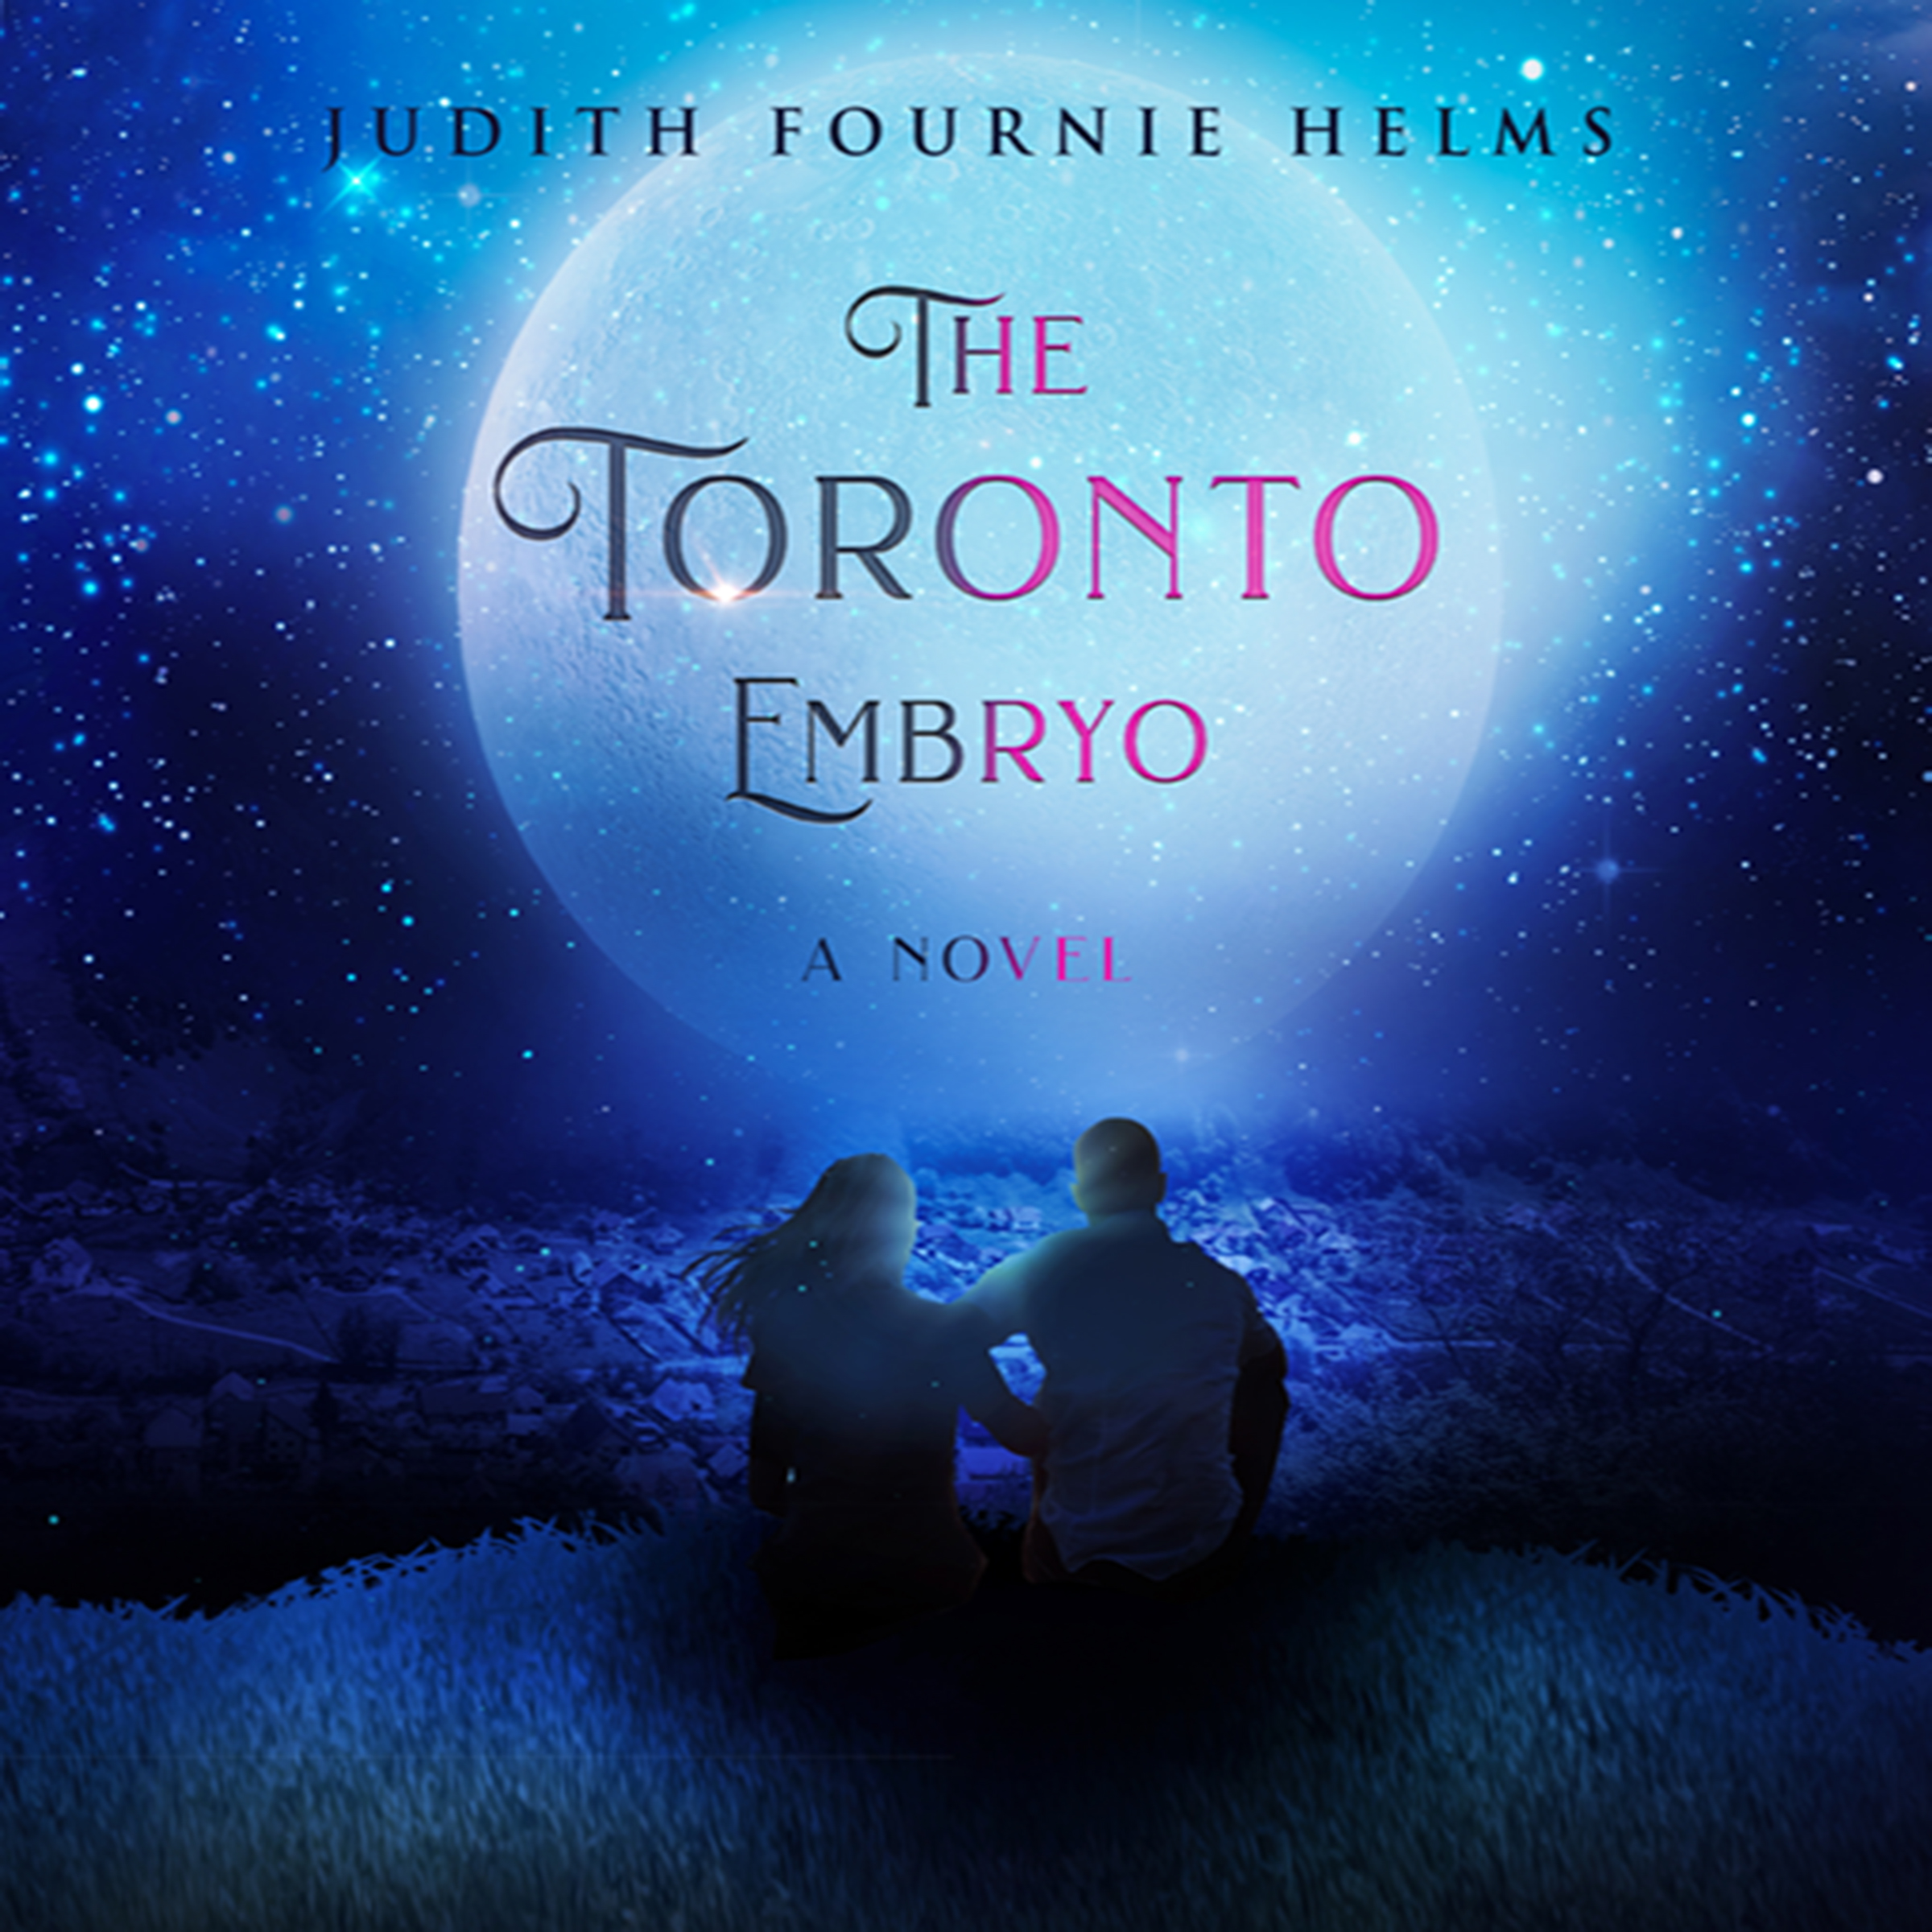 The Toronto Embryo